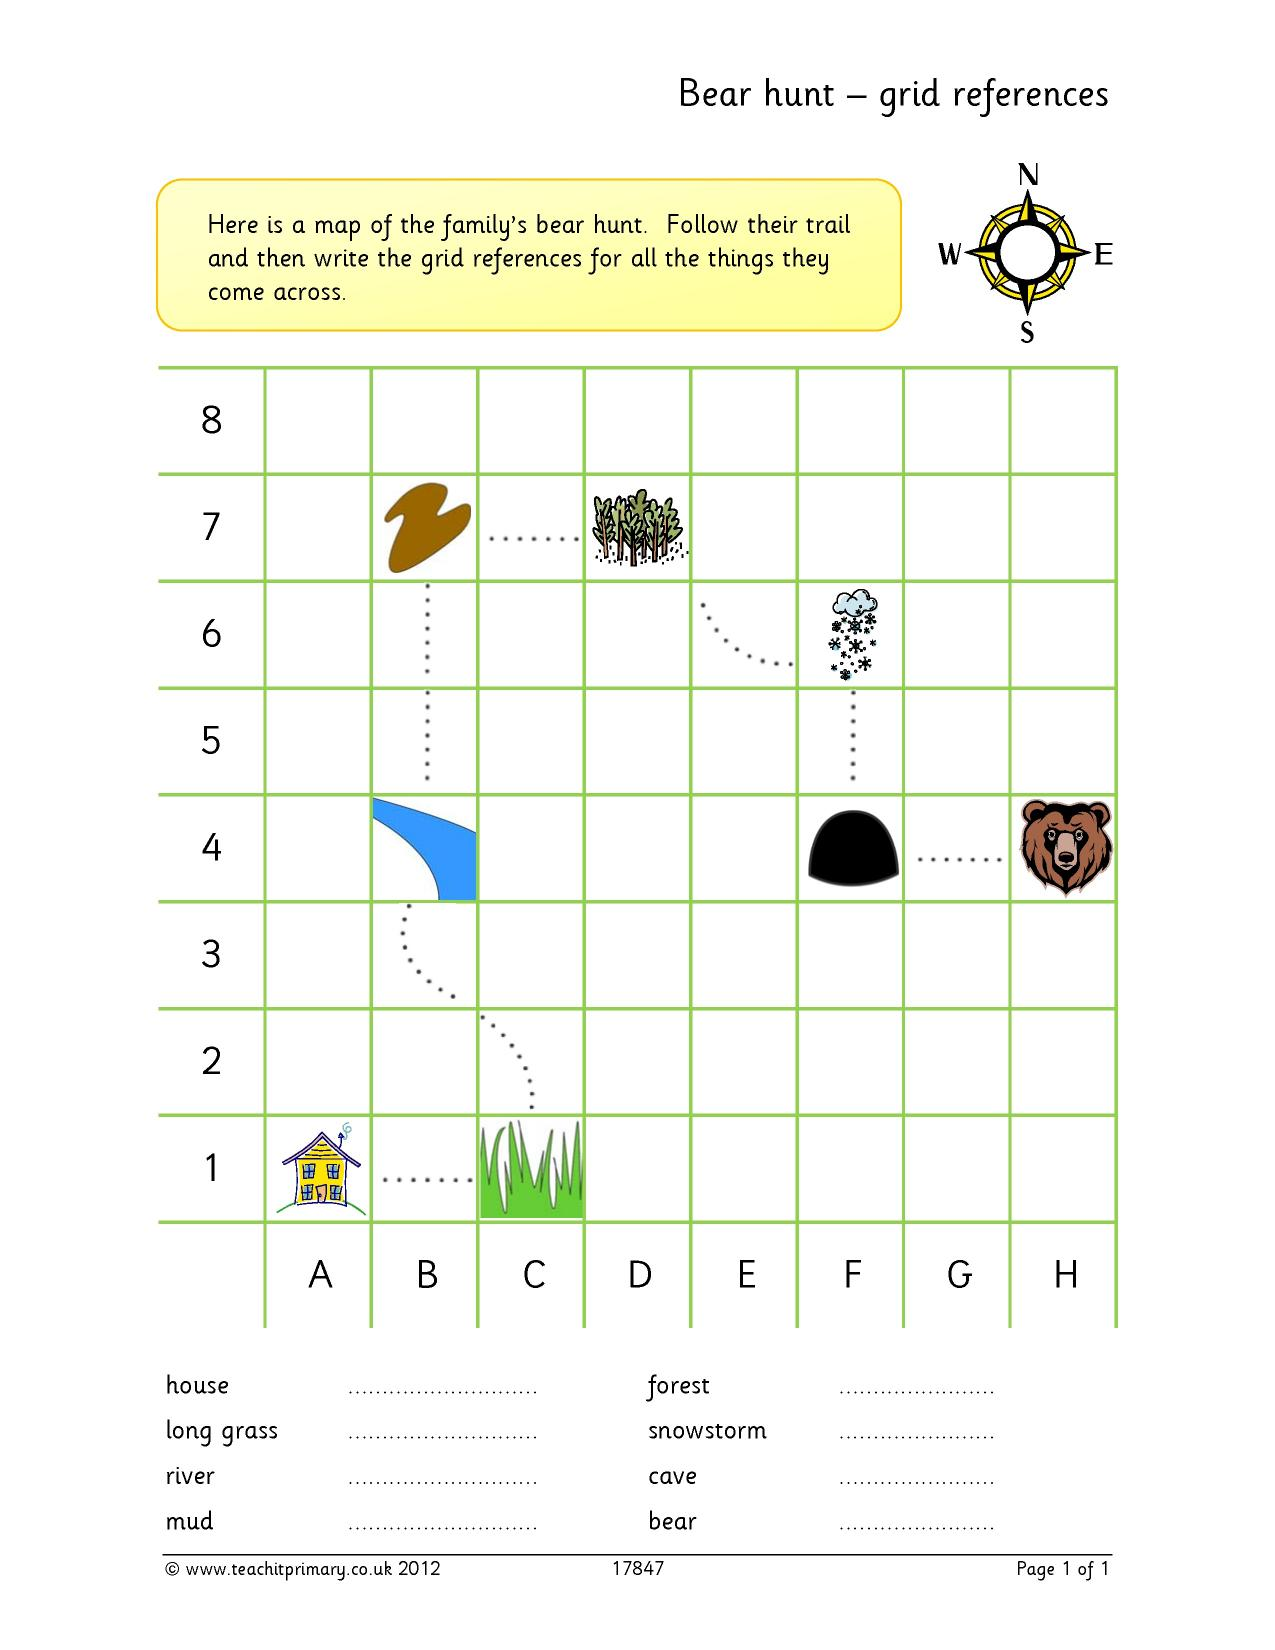 Geography | Mapping skills and fieldwork | Teachit Primary